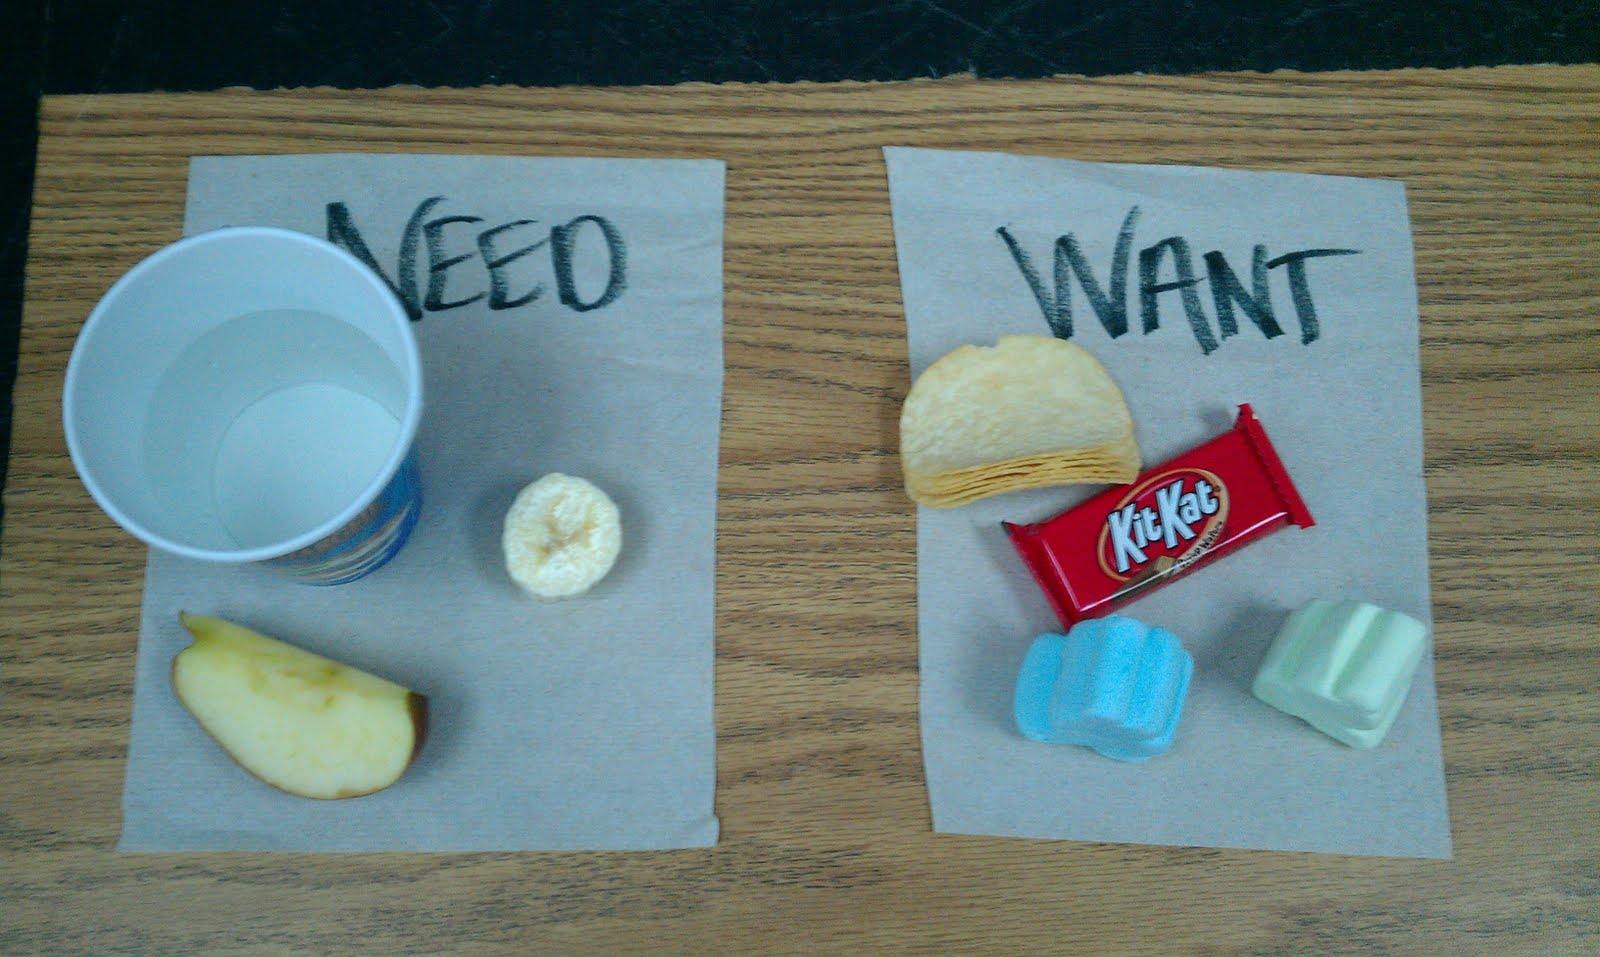 Wants Versus Needs – Wants Vs Needs Worksheet